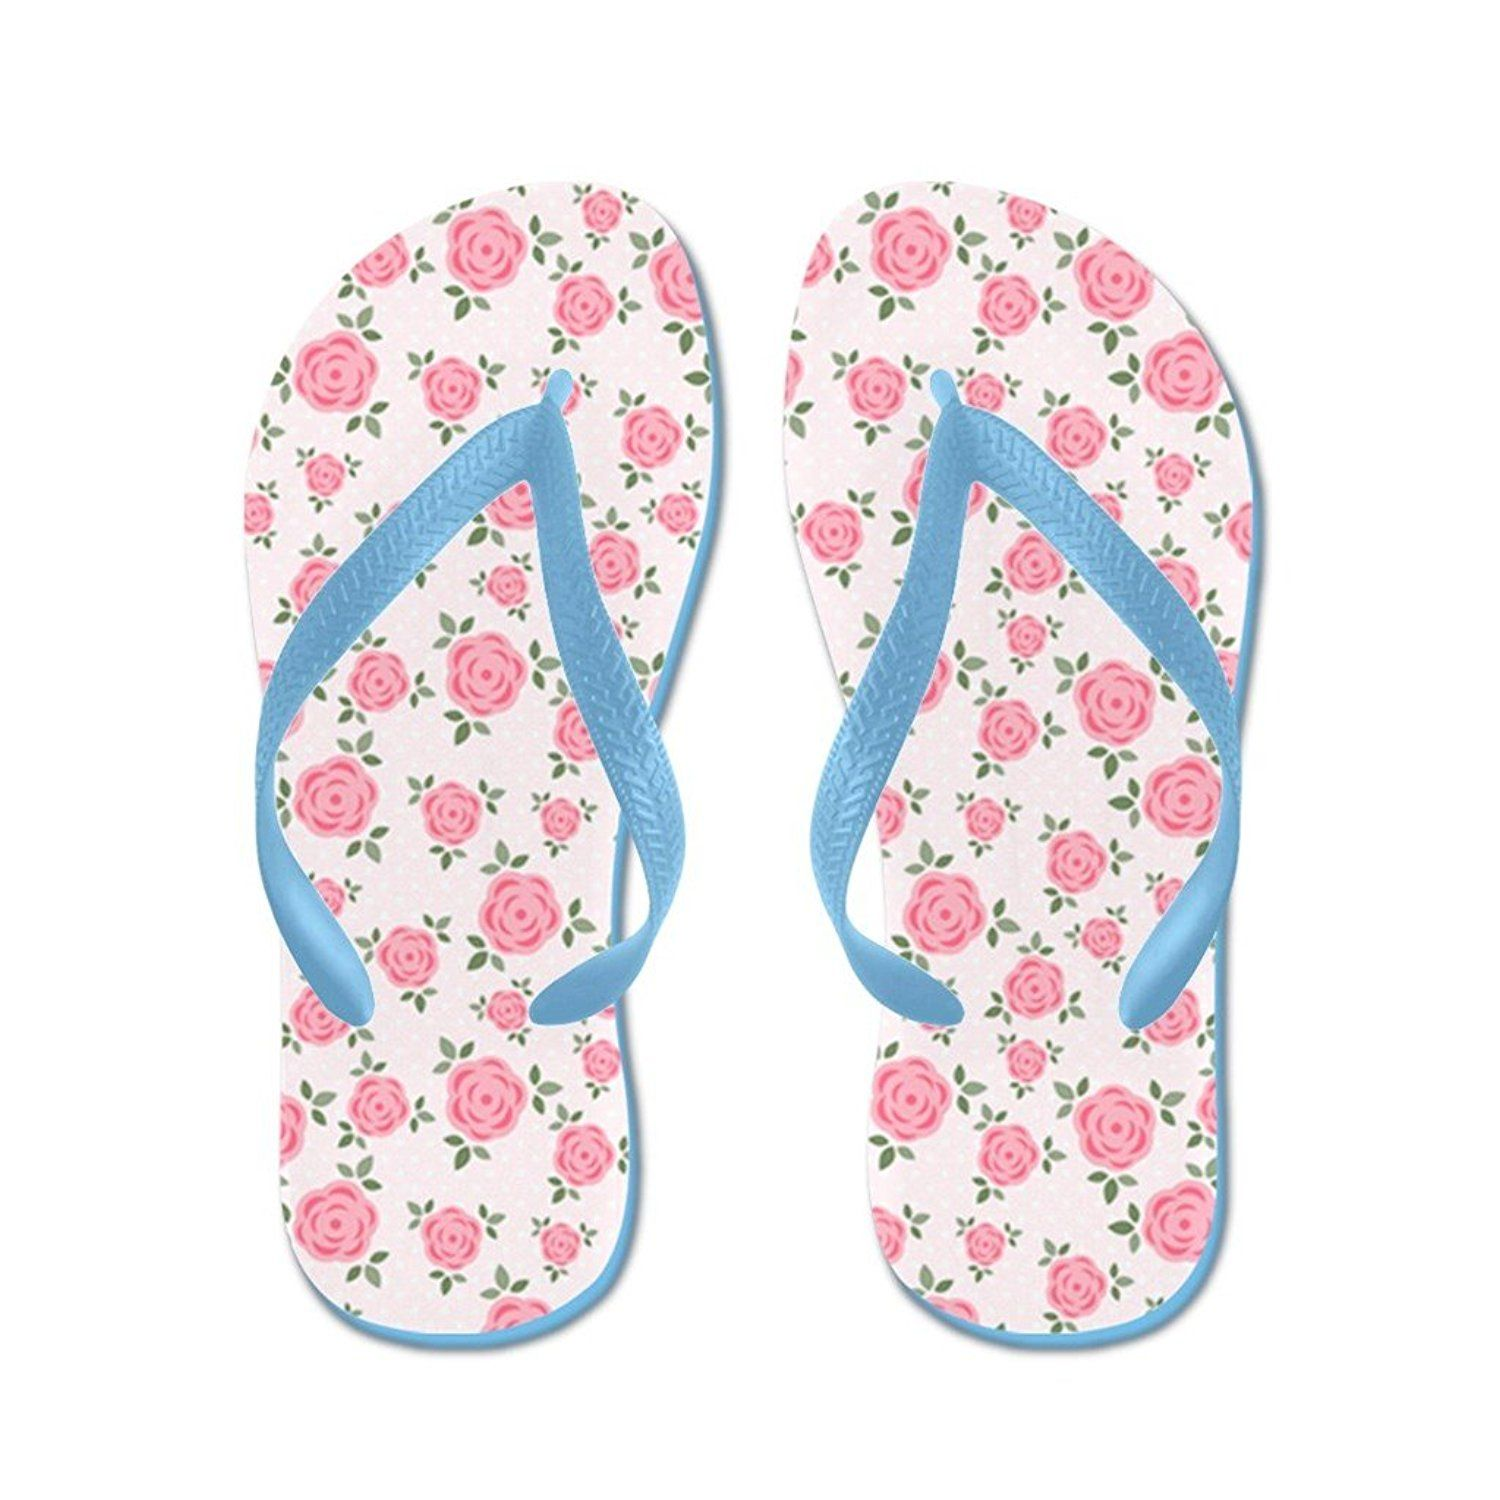 062cf7c16824 Lplpol Pretty Pink Flowers Pattern Flip Flops for Kids and Adult Unisex  Beach Sandals Pool Shoes Party Slippers     Be sure to check out this  awesome ...